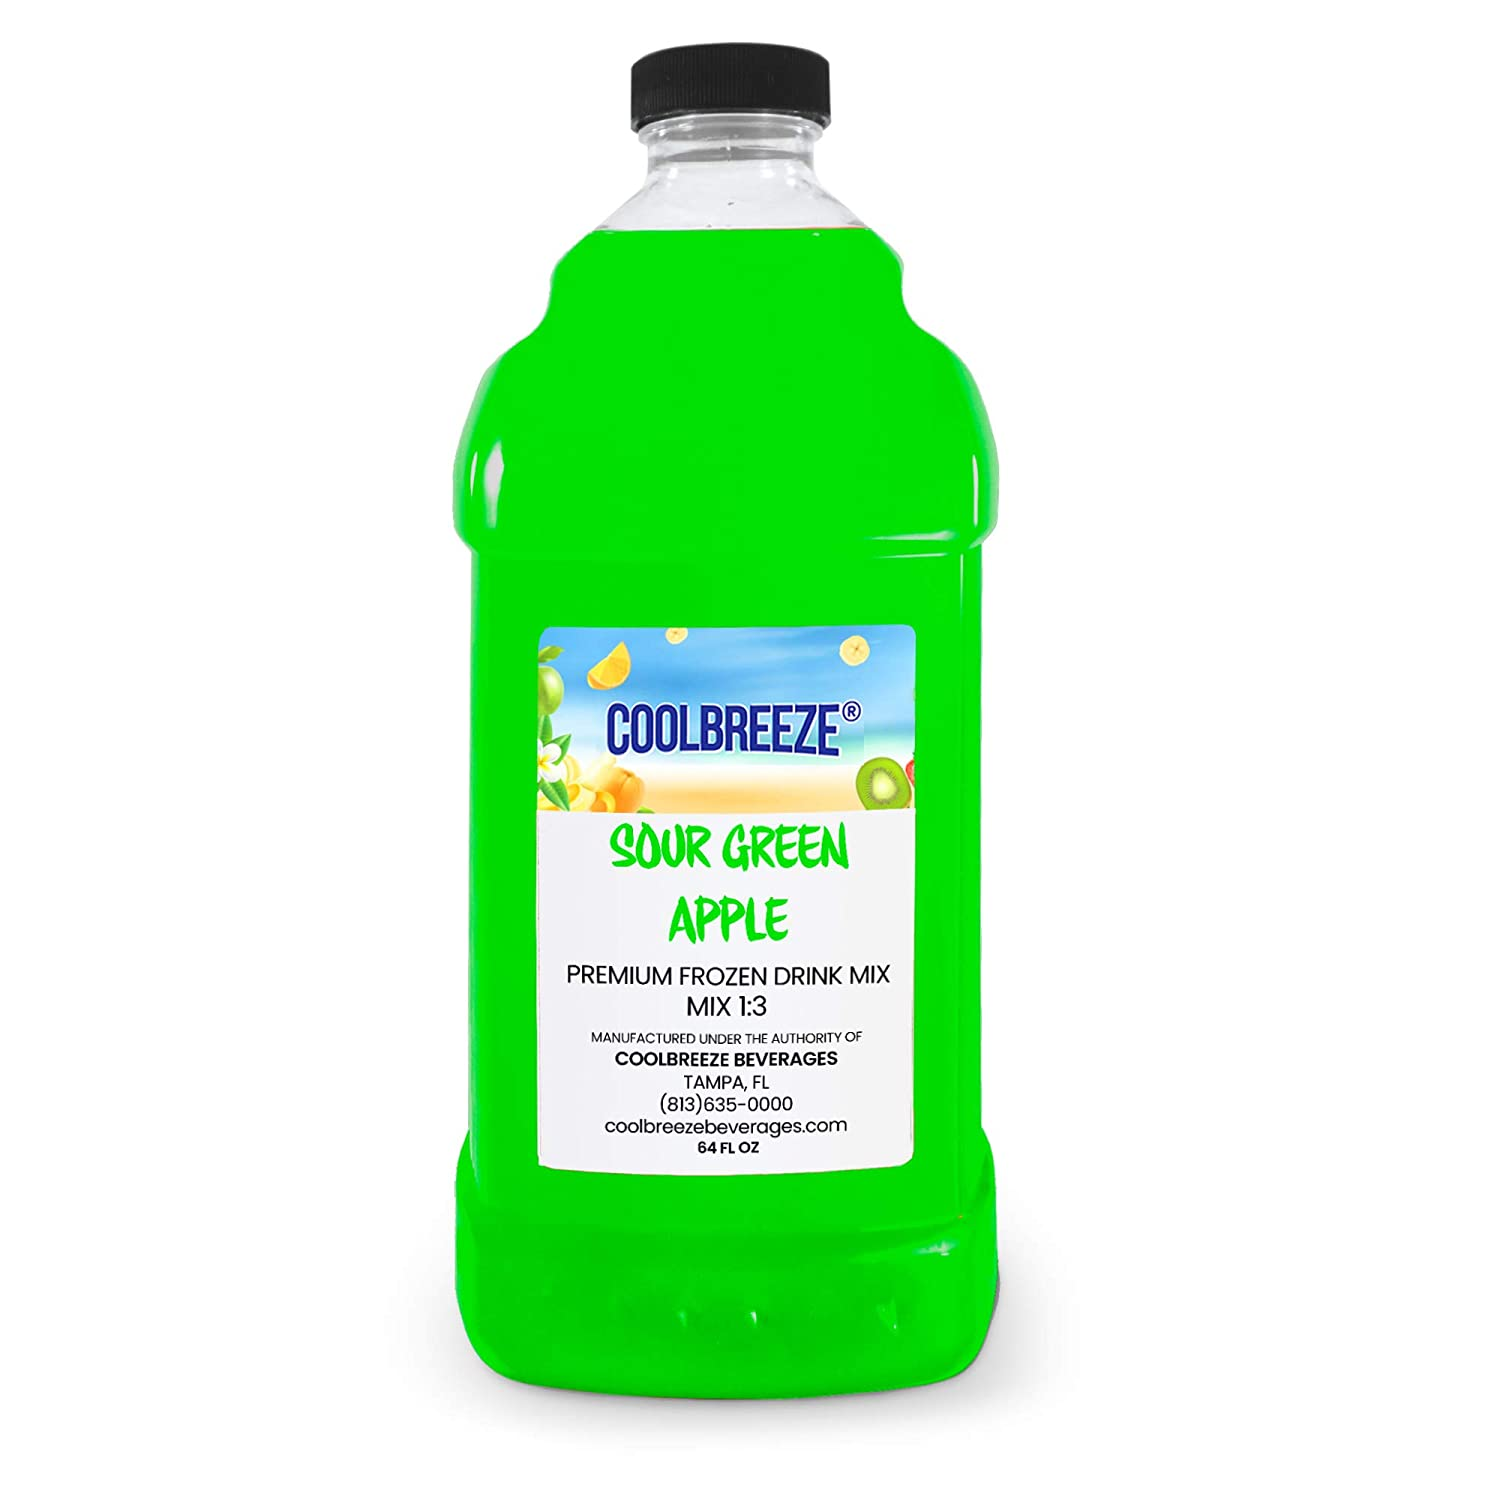 Coolbreeze Beverages Ready to Use Slush Mix - 1/2 Gal Bottle - Sour Green Apple